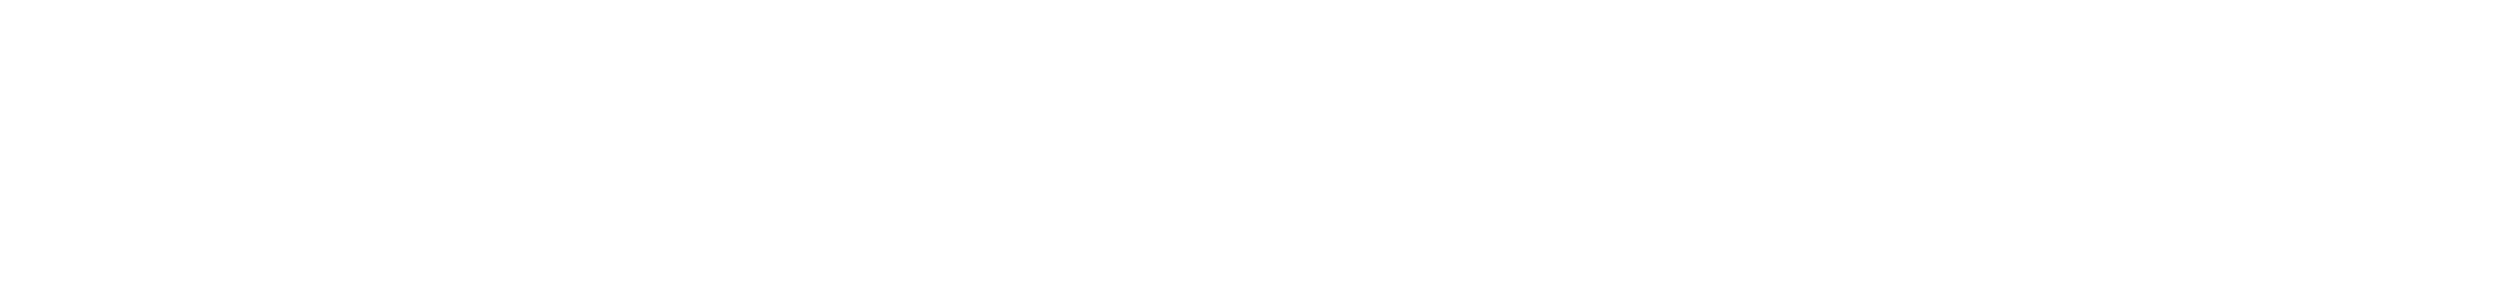 SONICWARE_LOGO_WHITE.png